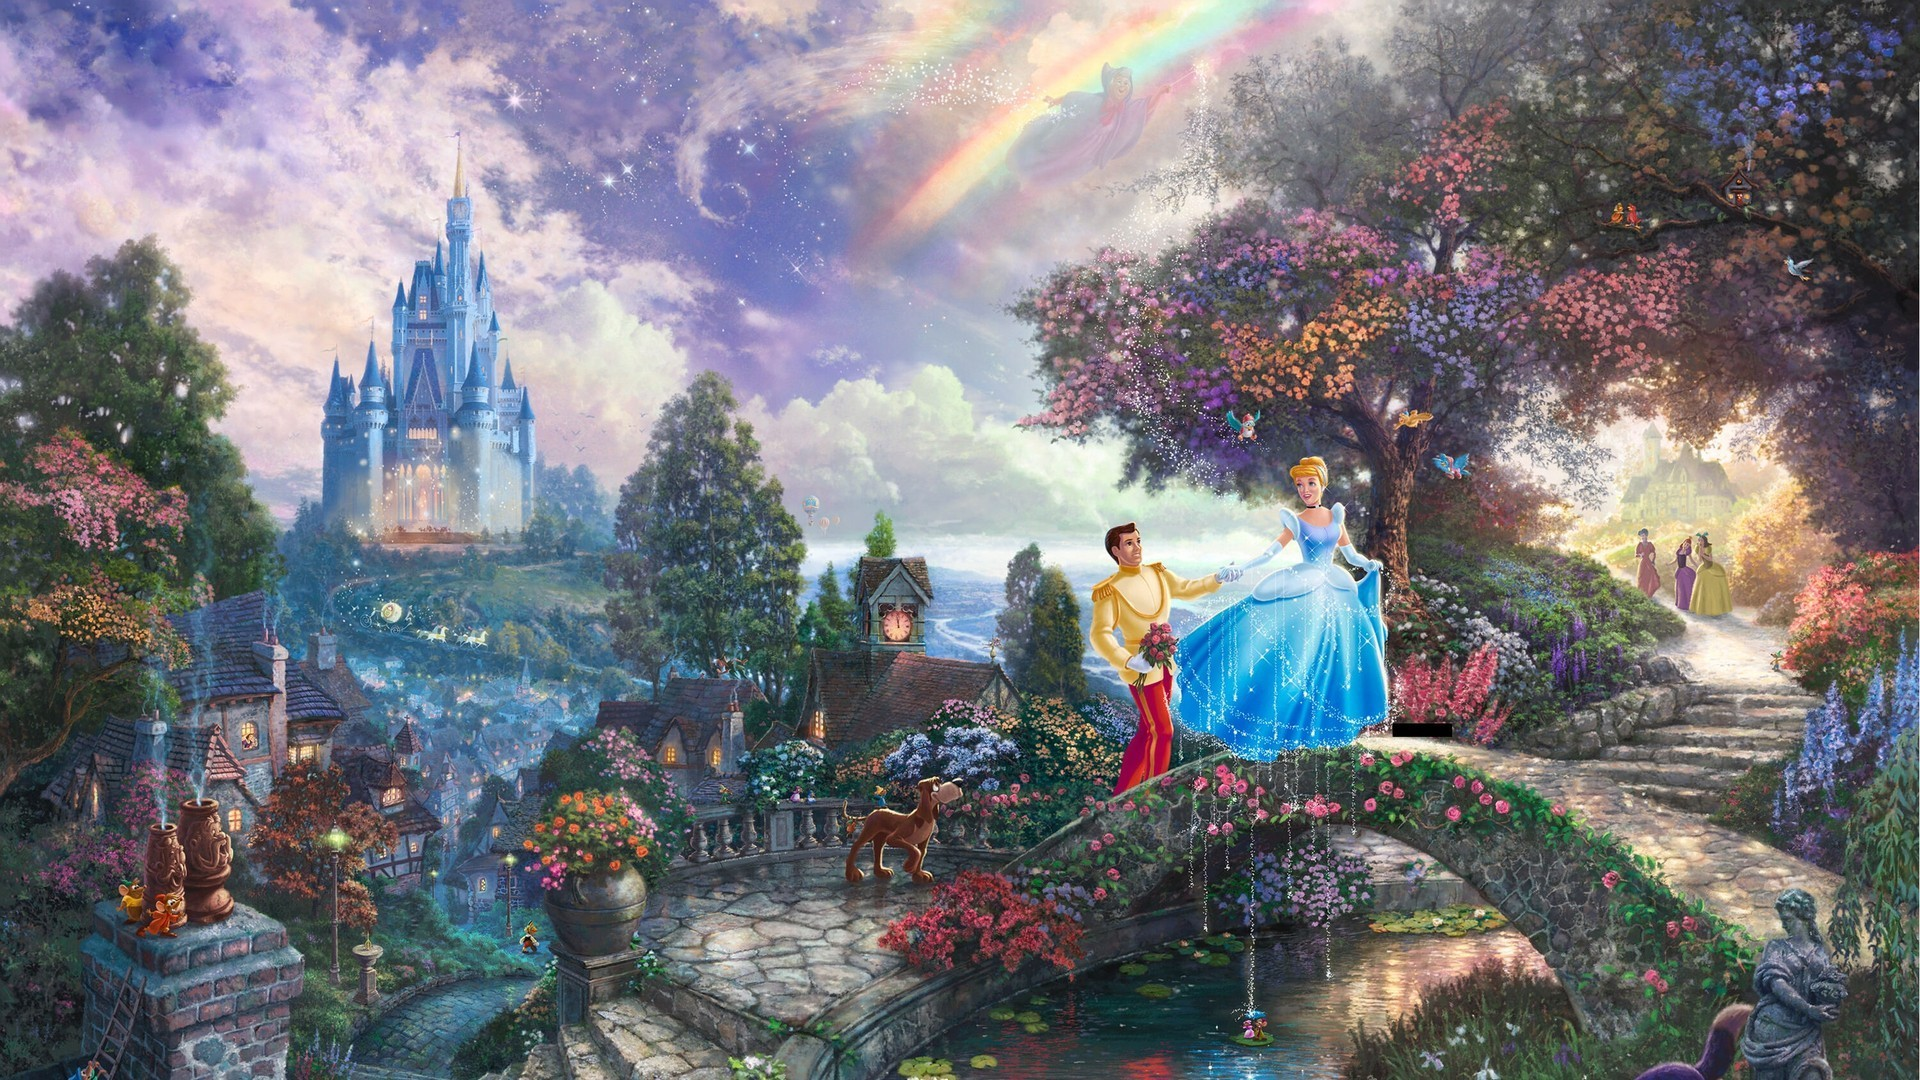 Cinderella Disney Castle Thomas Kinkade Digital Art Prince Wallpaper